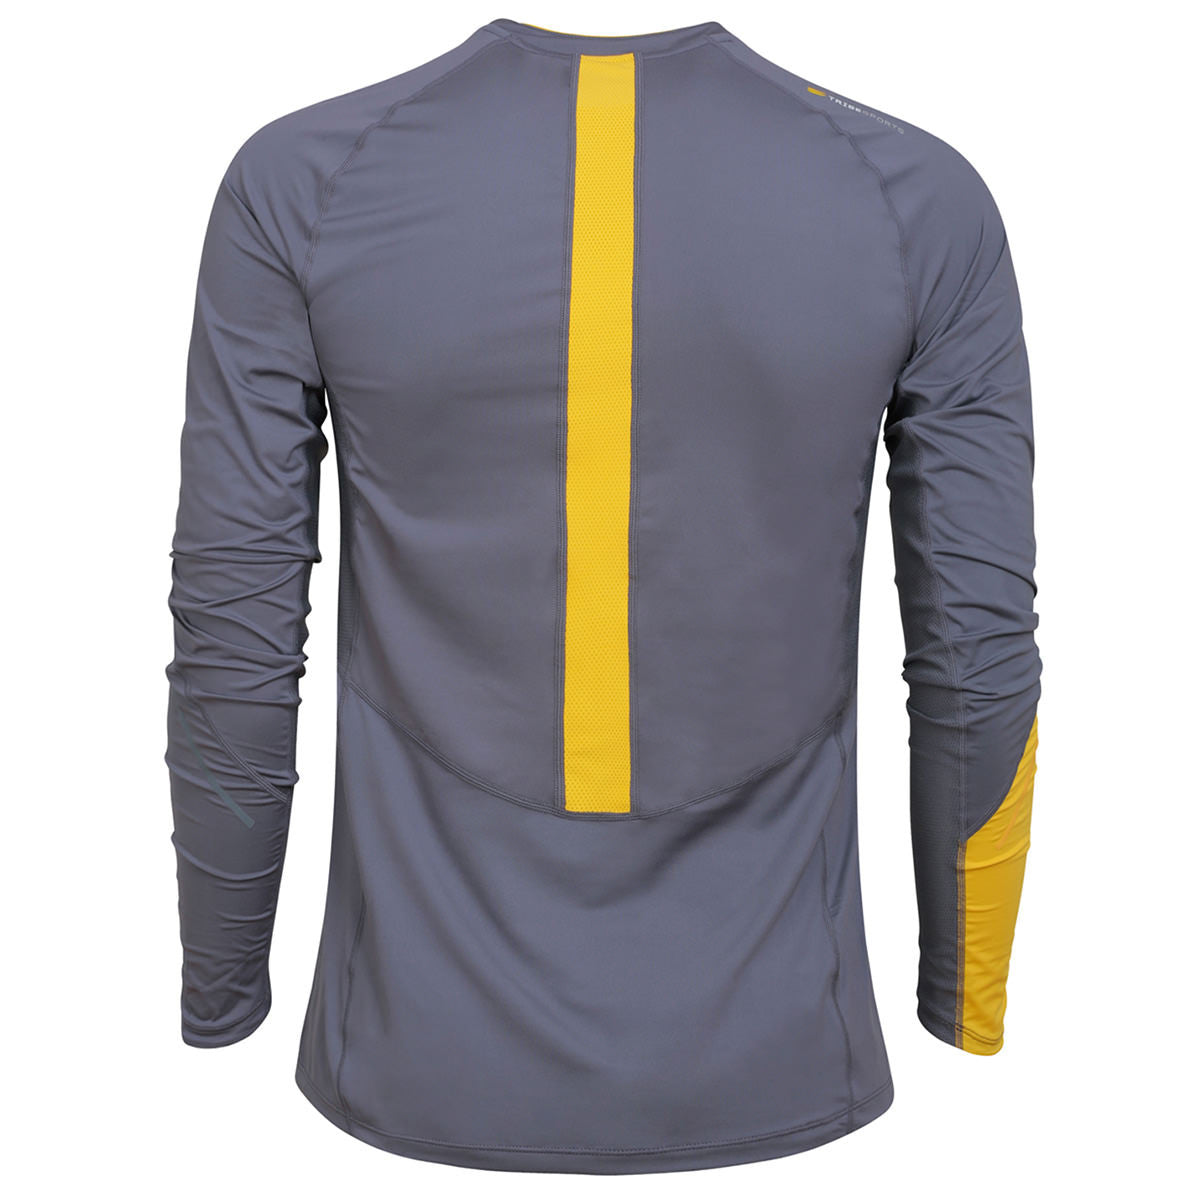 Men's Long Sleeve Running Top - Charcoal , Tribesports - 2